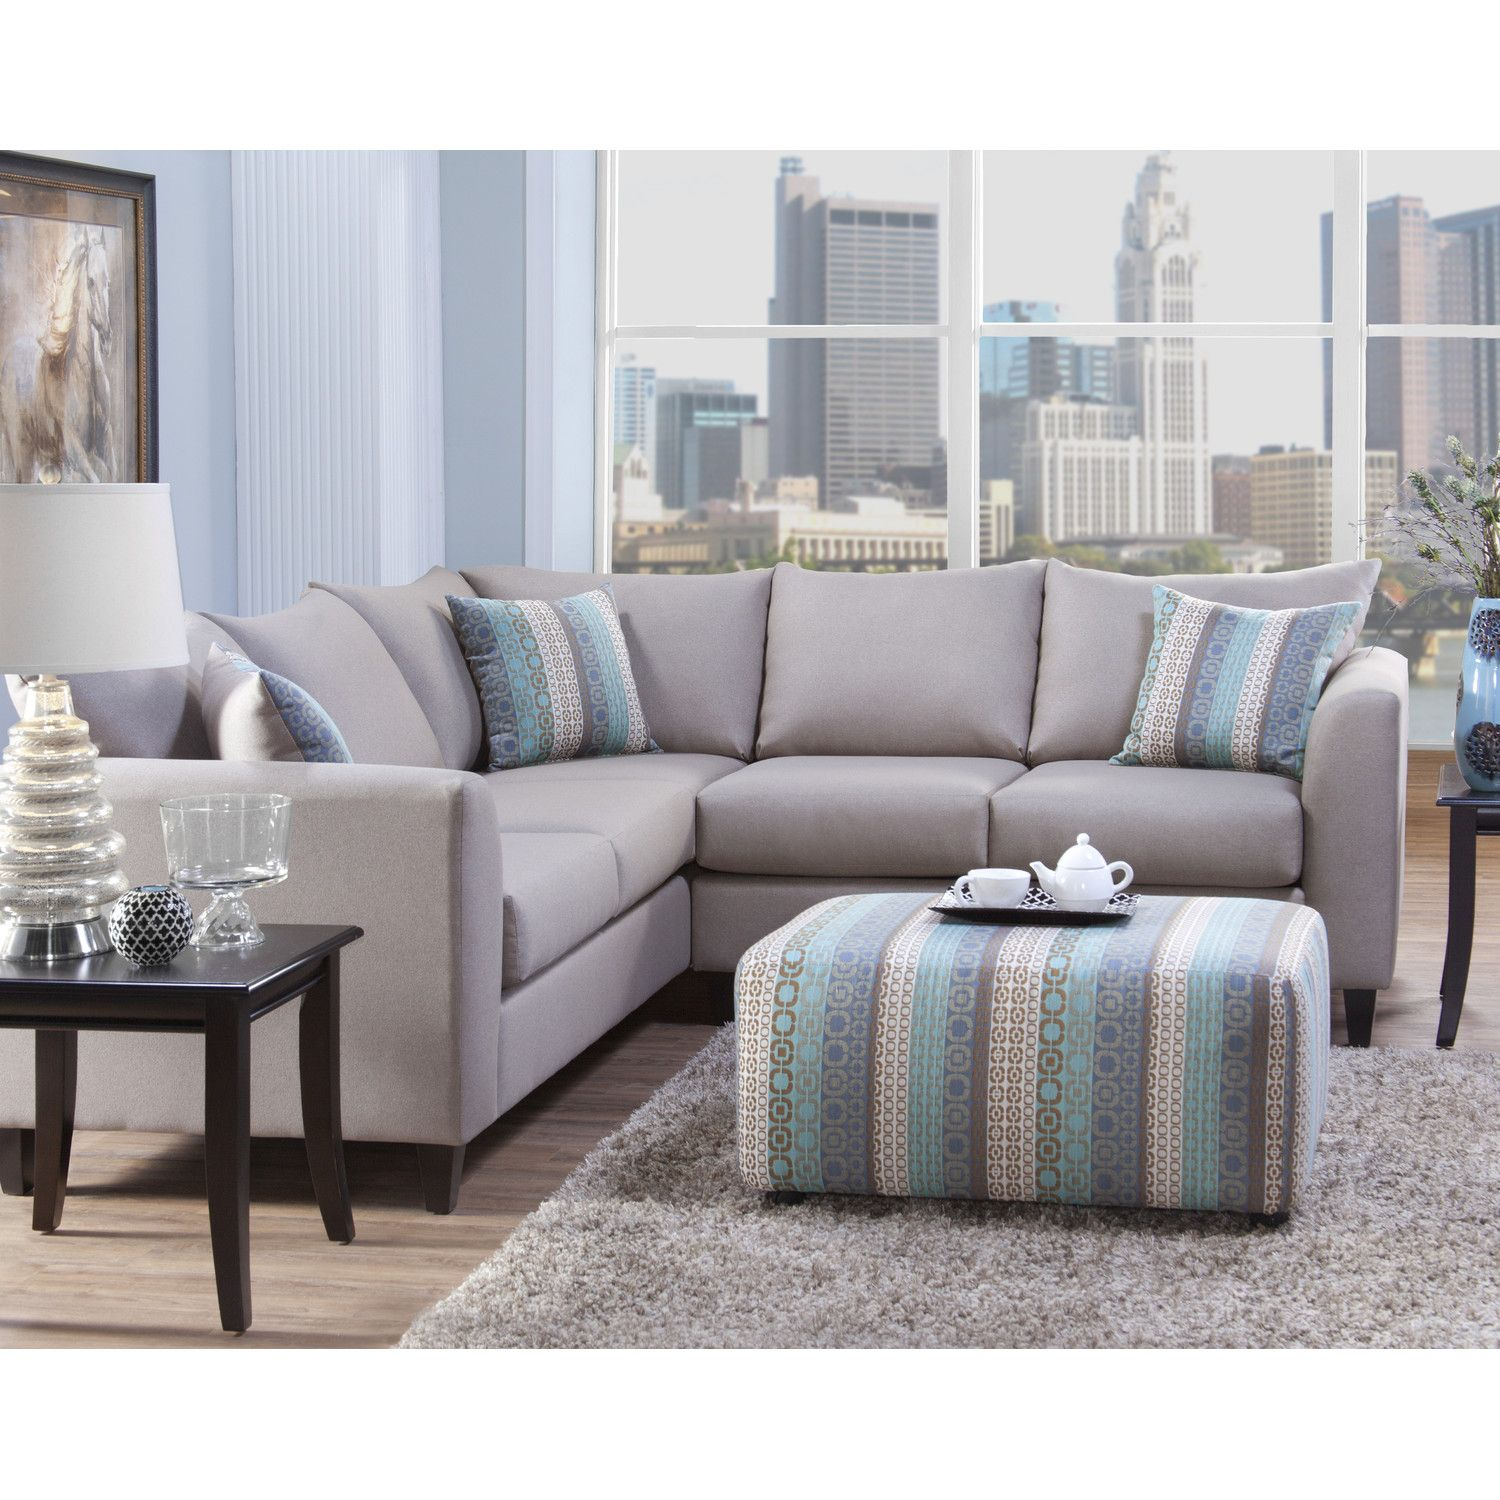 shop wayfair for serta upholstery sectional  great deals on all furnitureproducts. free shipping shop wayfair for serta upholstery sectional  great